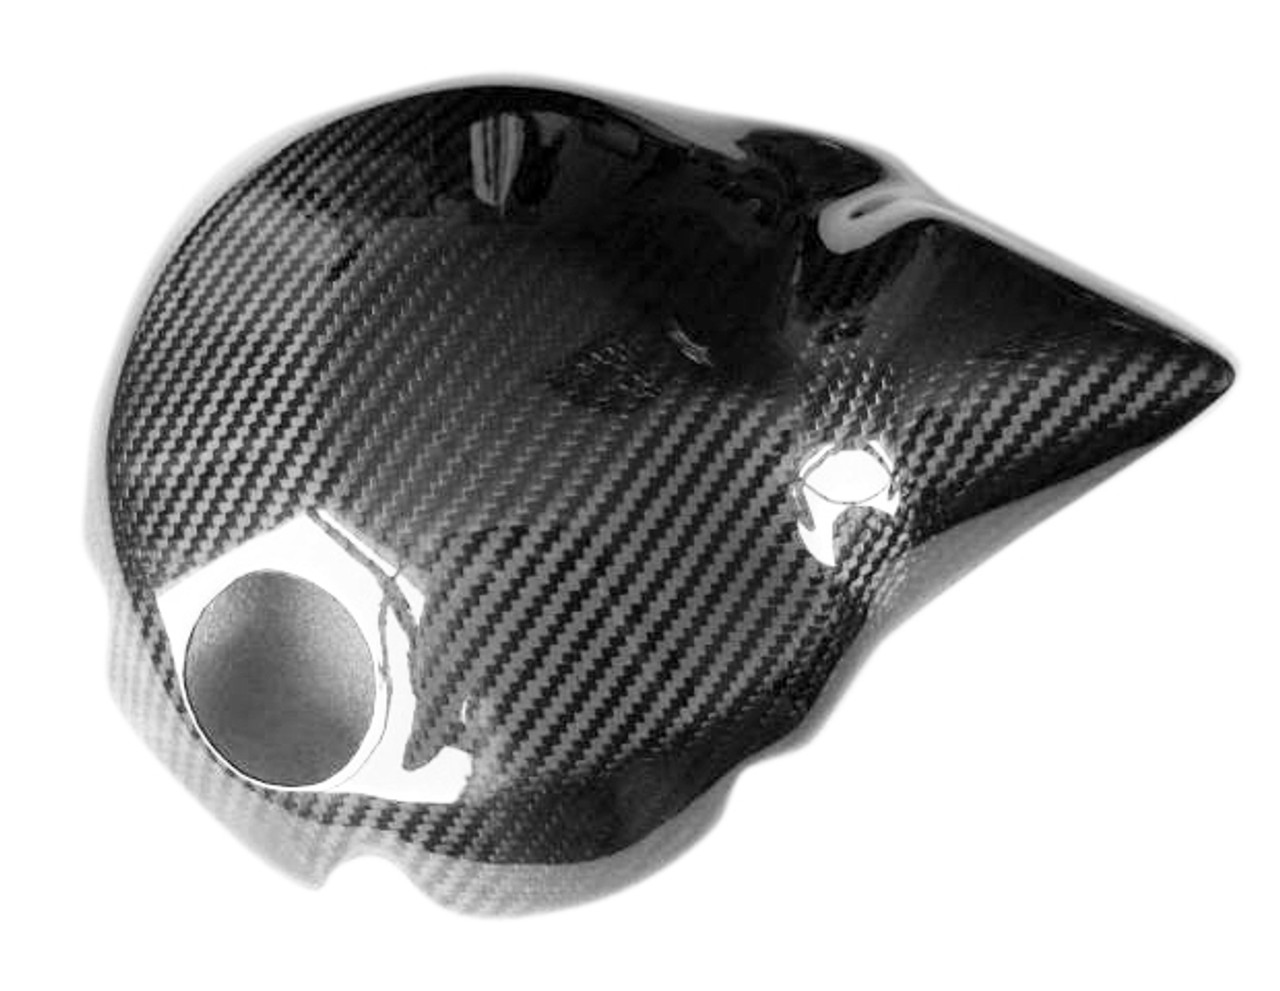 Glossy Twill Weave Carbon Fiber  Clutch Cover for Yamaha R1 04-06